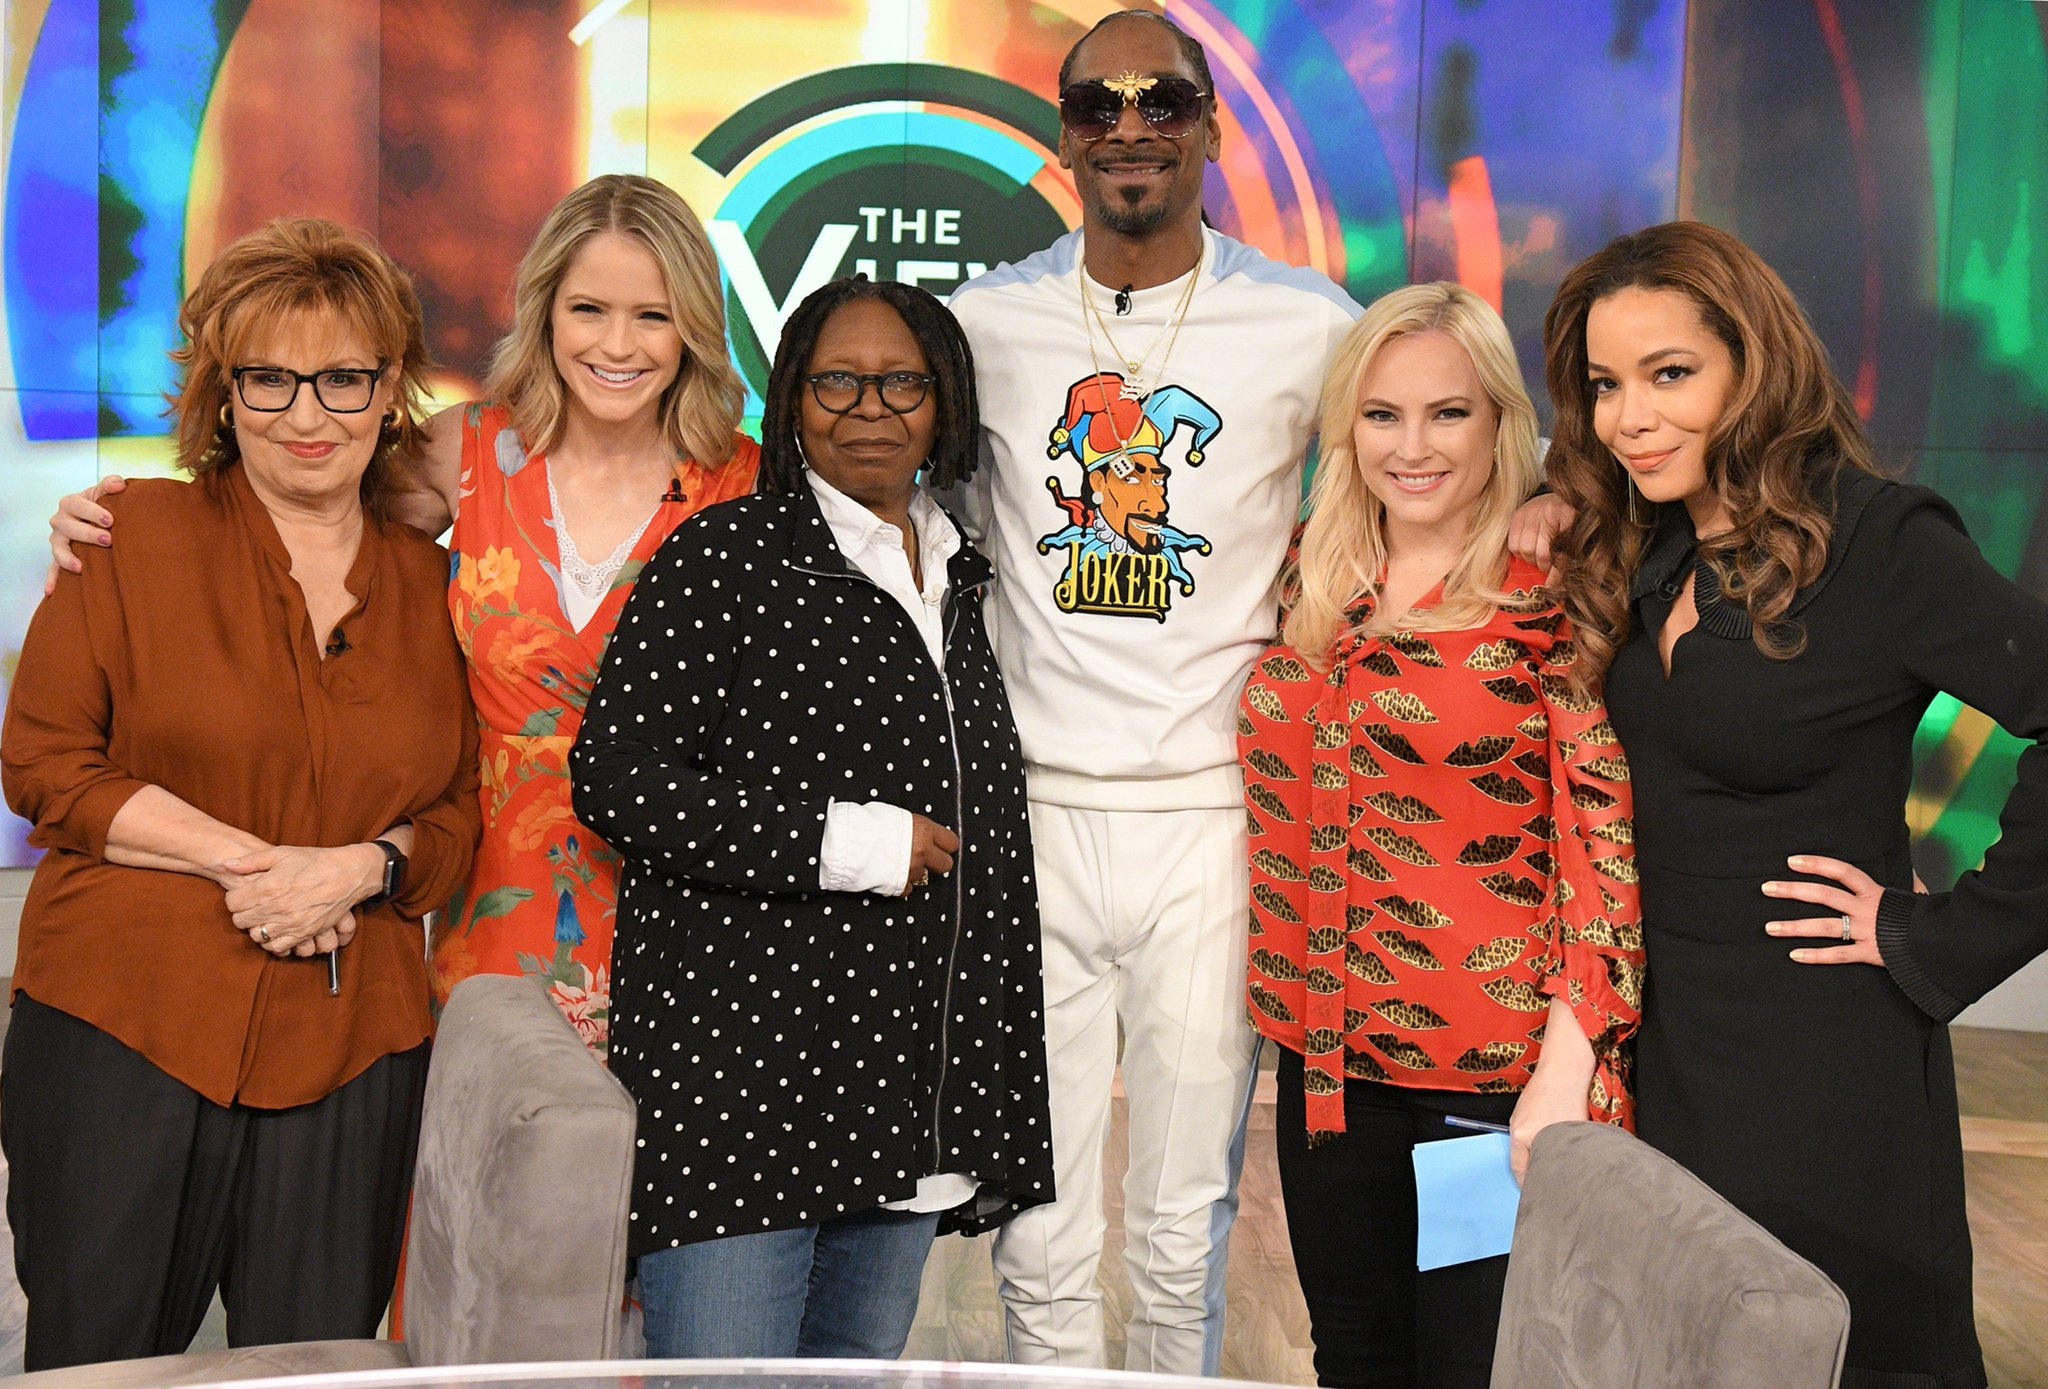 catch me wit the lovely ladies of @TheView tomorrow morning on ABC ���� https://t.co/B89gSLRMGj